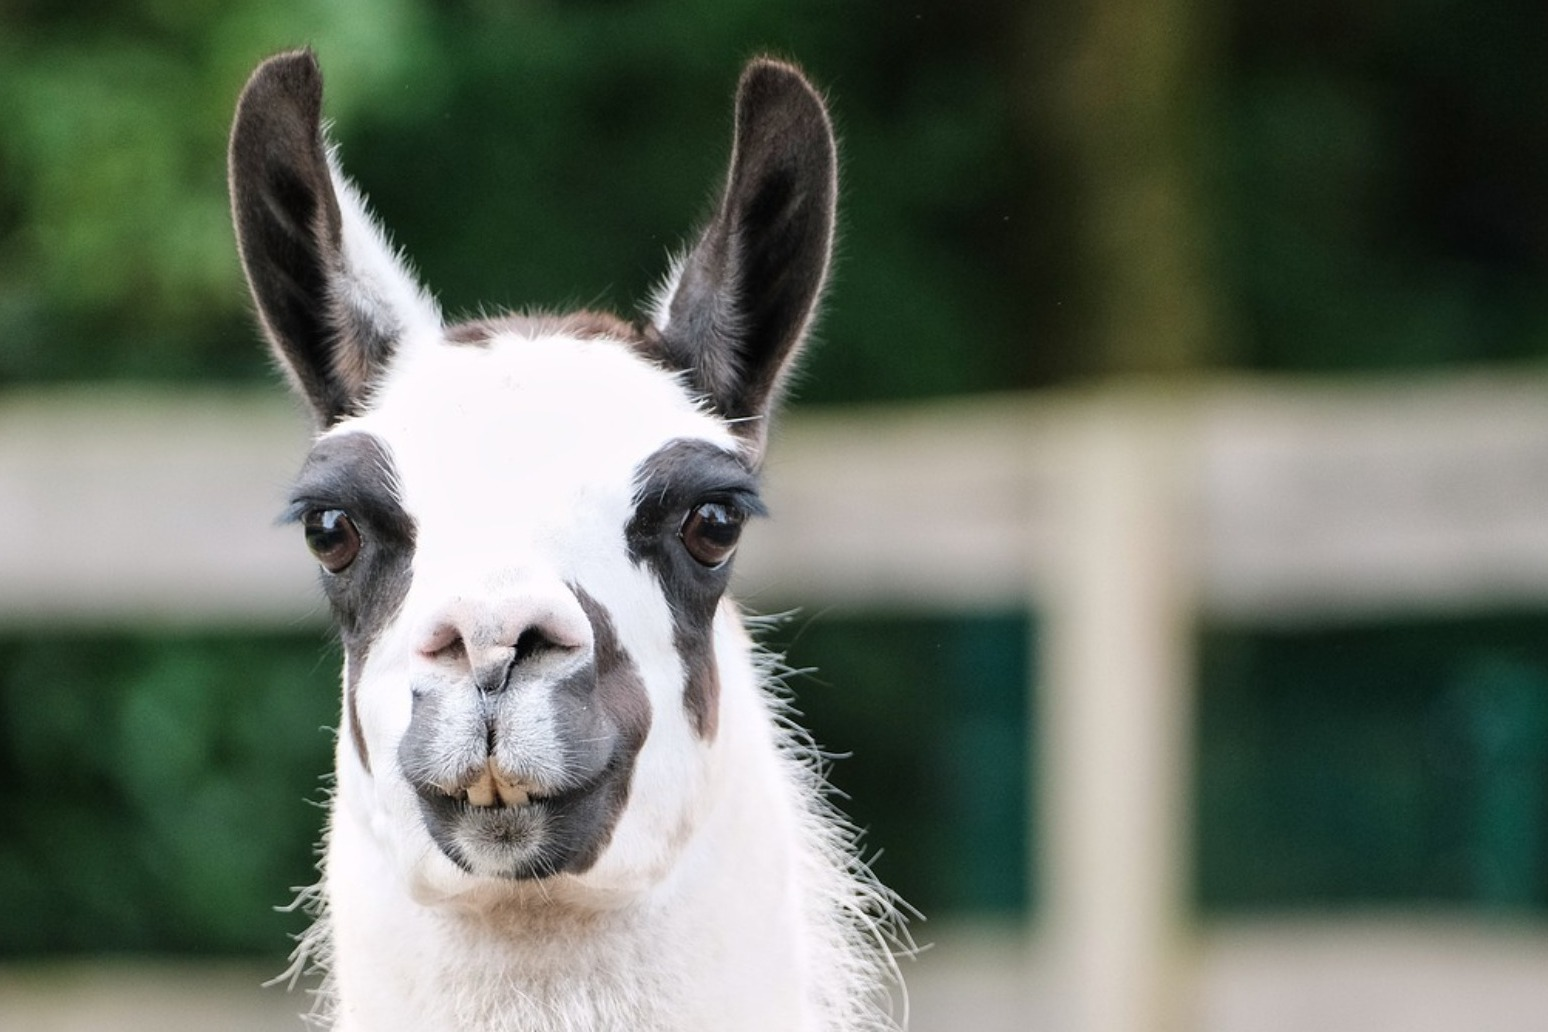 Llama antibodies have 'significant potential' as Covid treatment